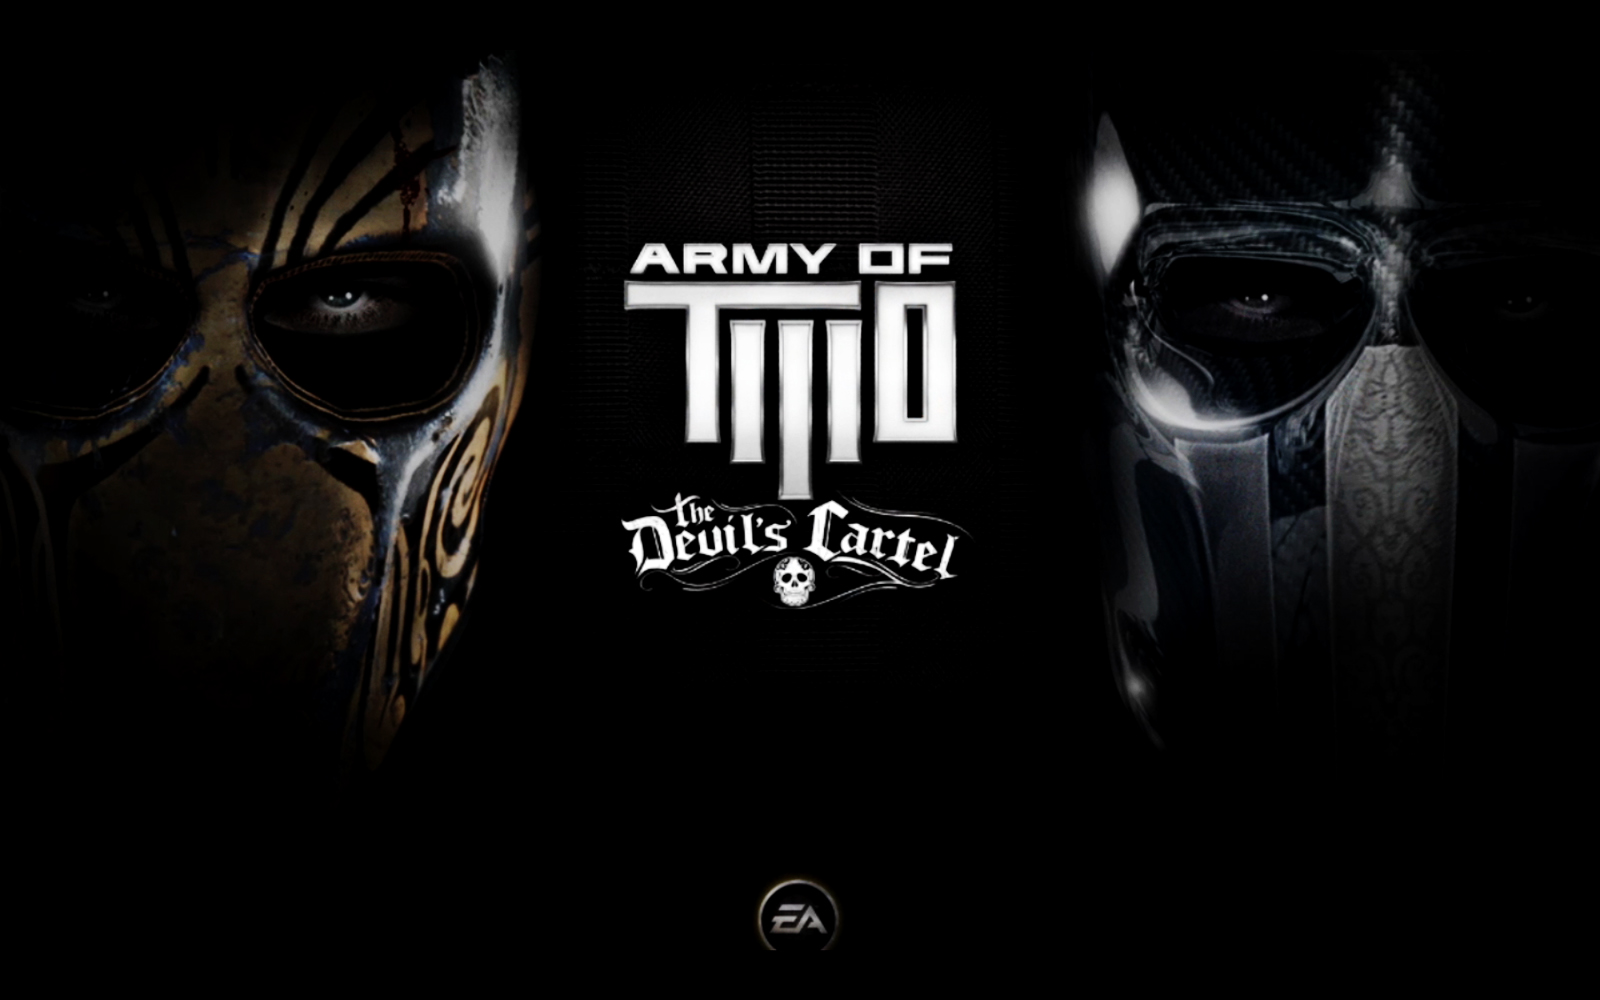 http://3.bp.blogspot.com/-QHy1wQ1_x8Q/UEdg2479fTI/AAAAAAAAESw/3K5quaDJUoQ/s1600/The_Army_of_Two_Devils_Cartel_Masks_HD_Wallpaper-GameWallBase.Com.jpg